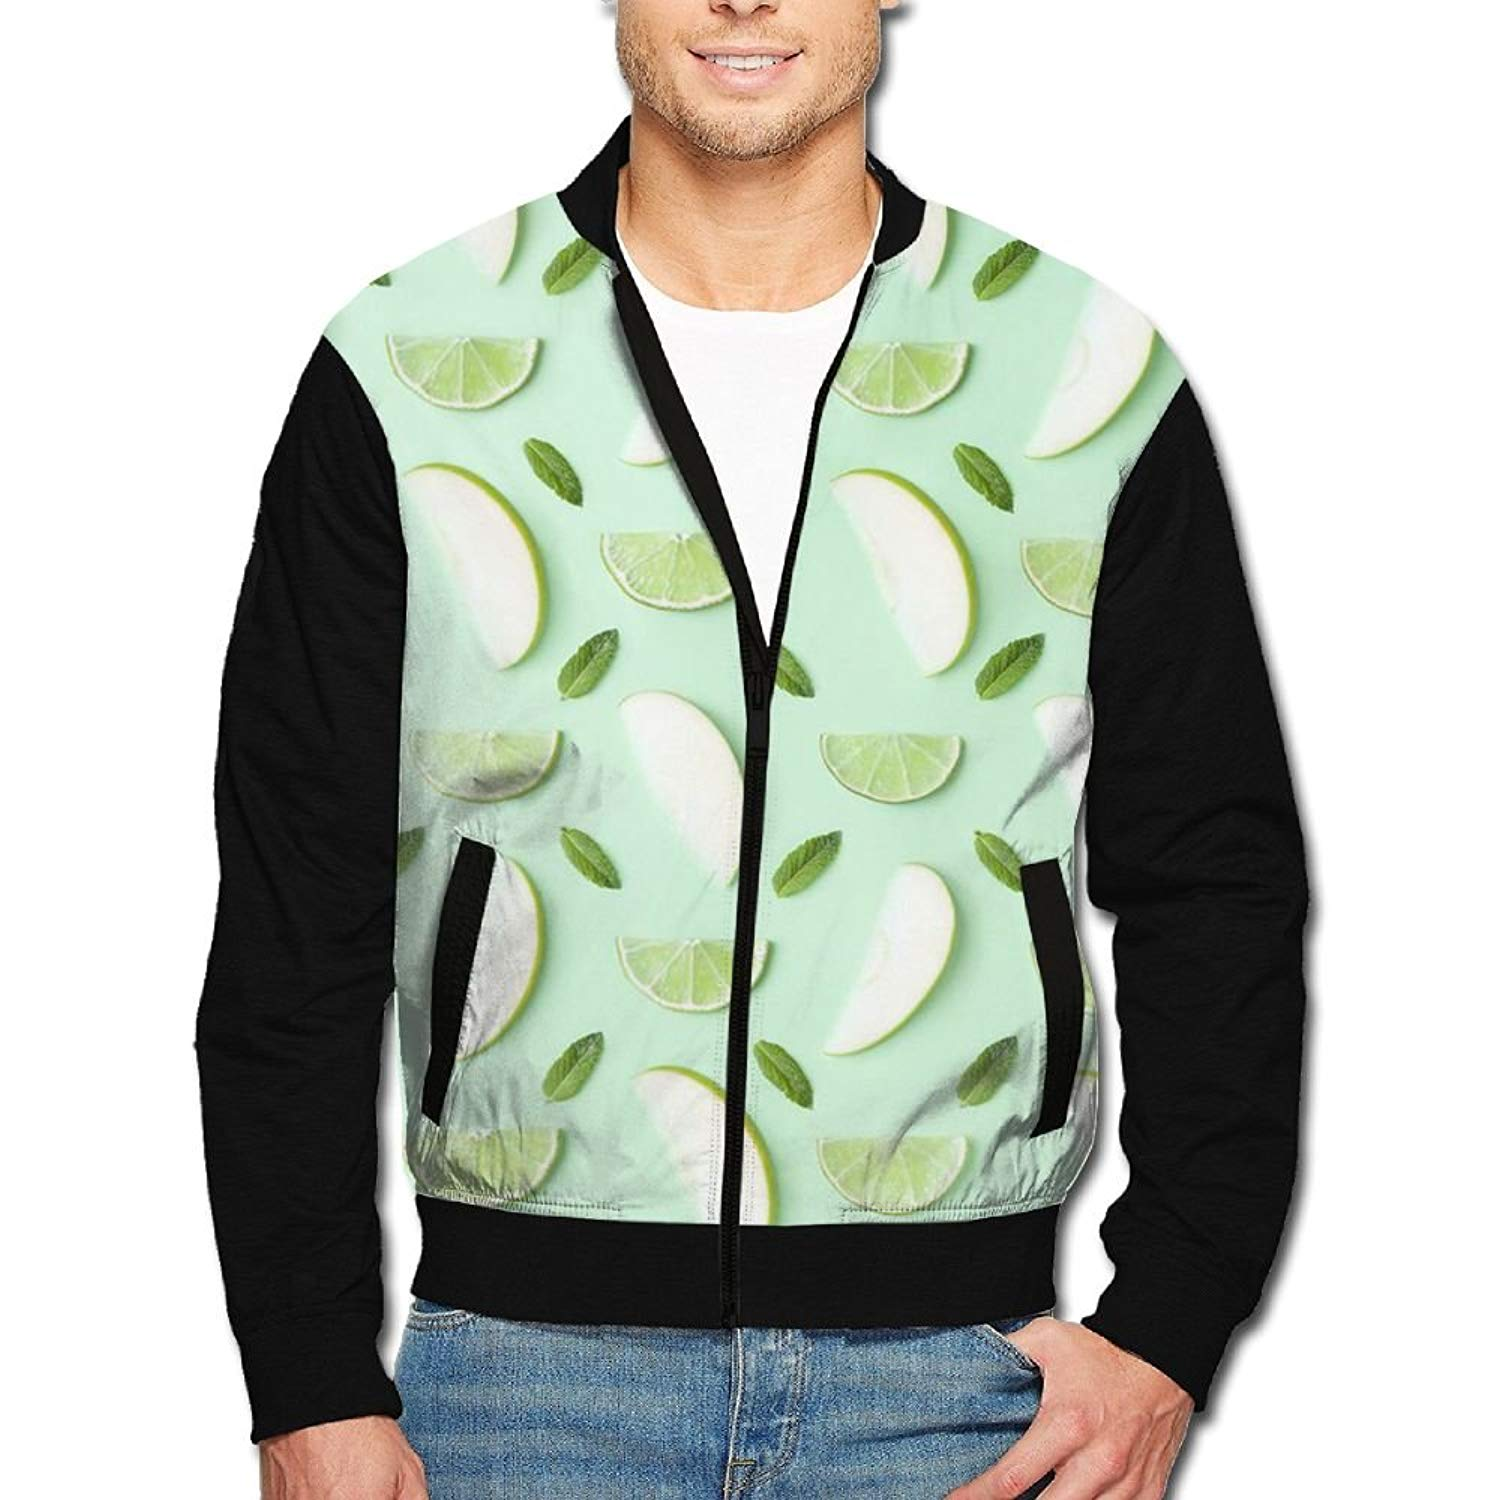 183924e6b753 Get Quotations · HTRHA Men s Zip Front Jacket Printing Pattern Green Lemon  Print Stand Collar Baseball Bomber Jacket